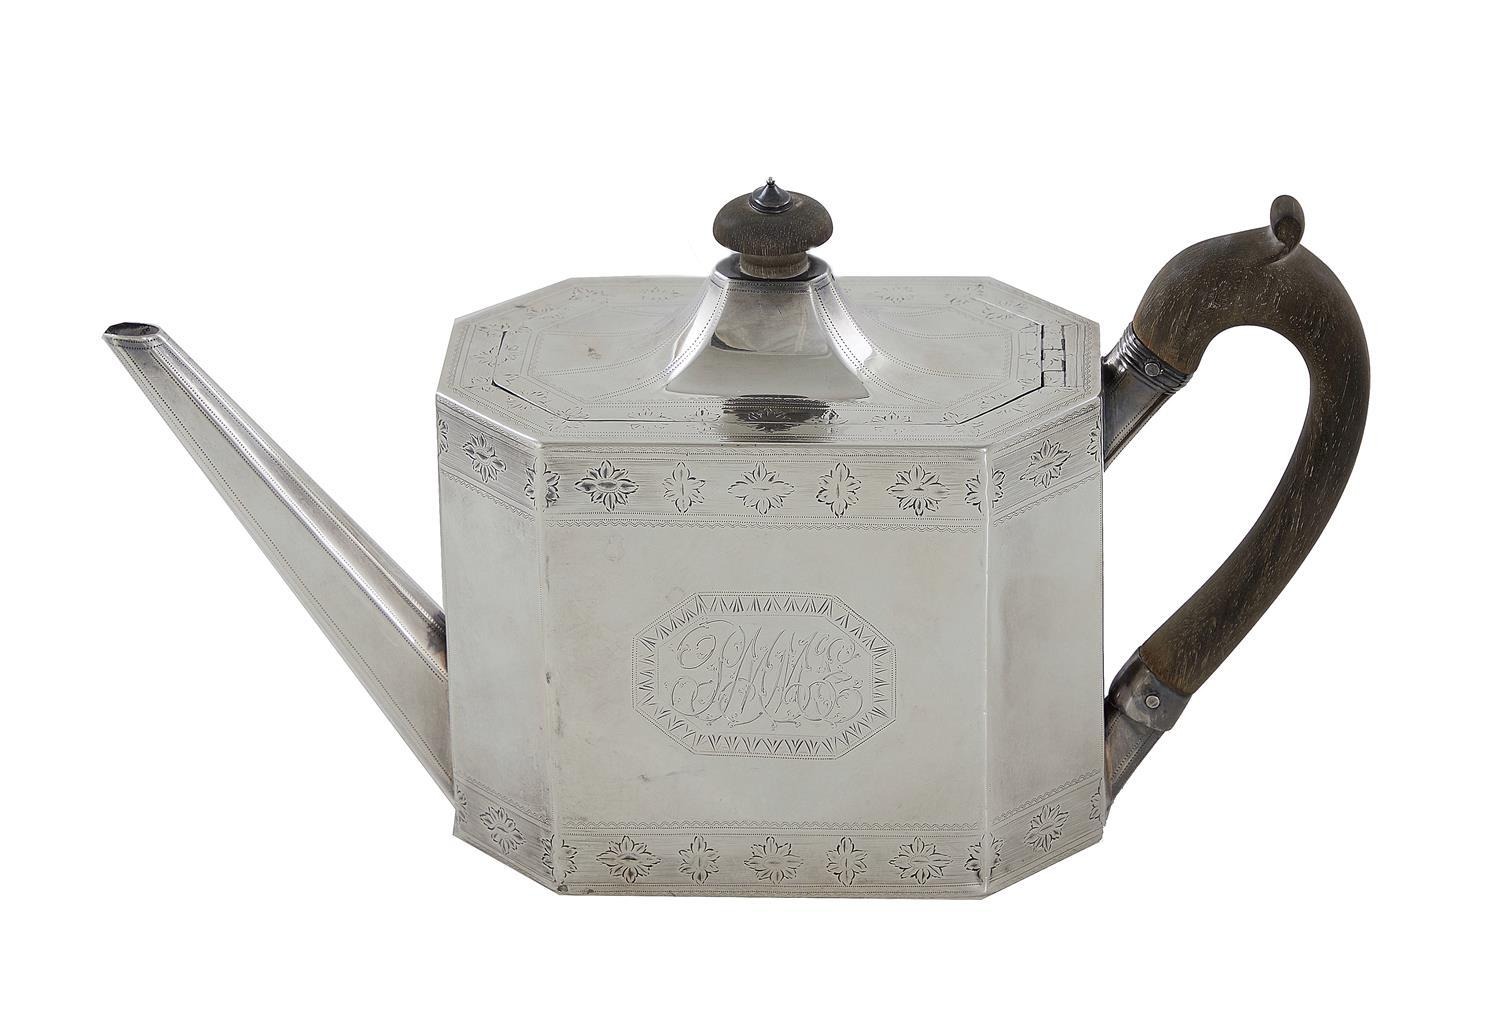 George III silver teapot, Henry Chawner